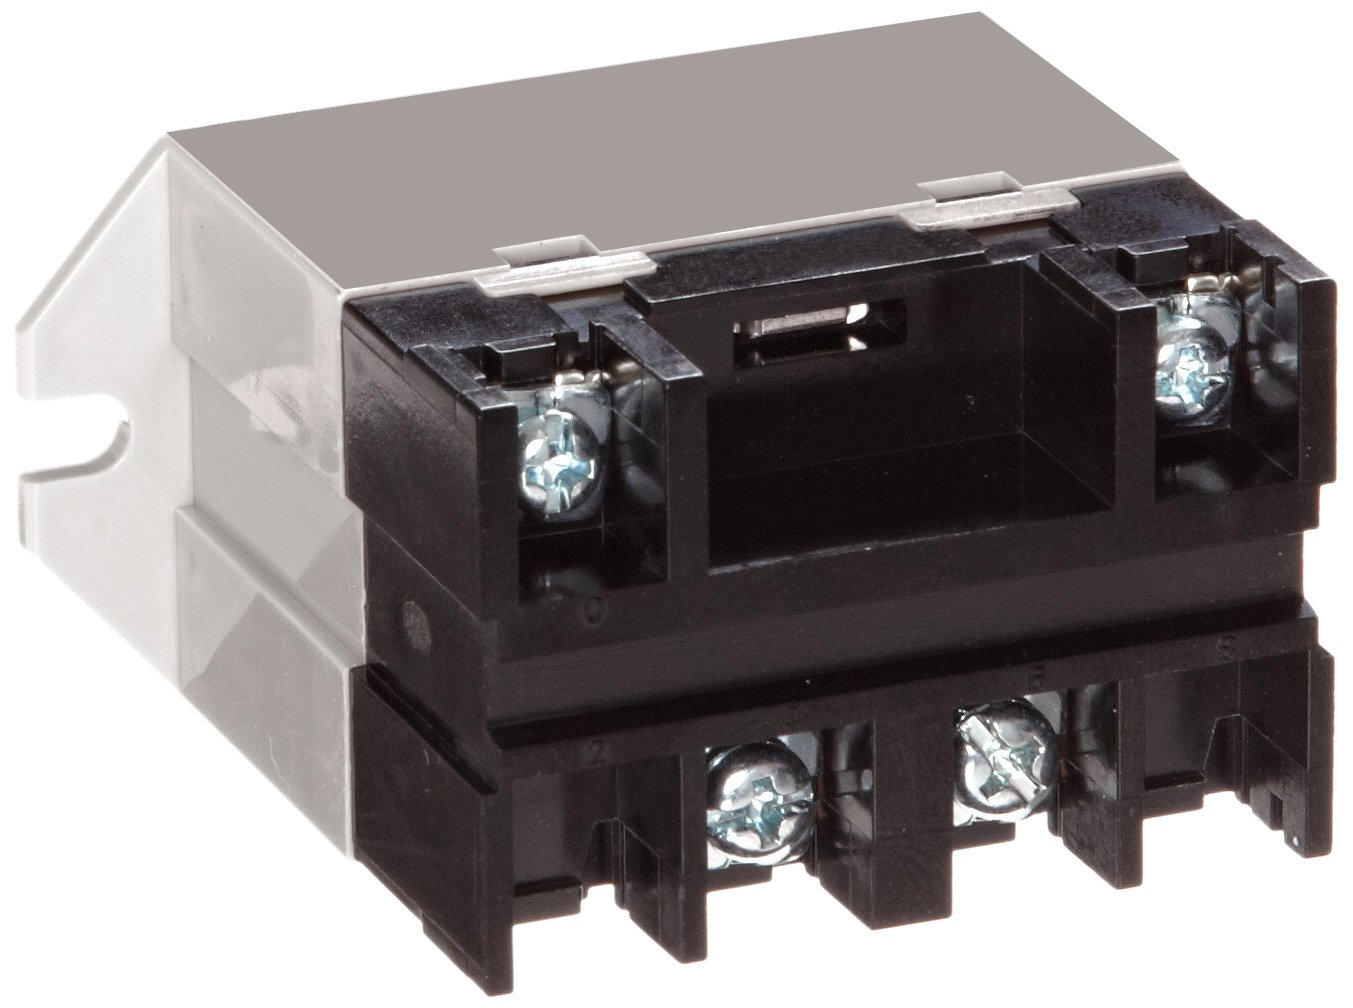 Omron G7L-1A-BUB-CB AC24 General Purpose Relay, Class B Insulation, Screw Terminal, Upper Bracket Mounting, Single Pole Single Throw Normally Open Contacts, 71 mA Rated Load Current, 24 VAC Rated Load Voltage